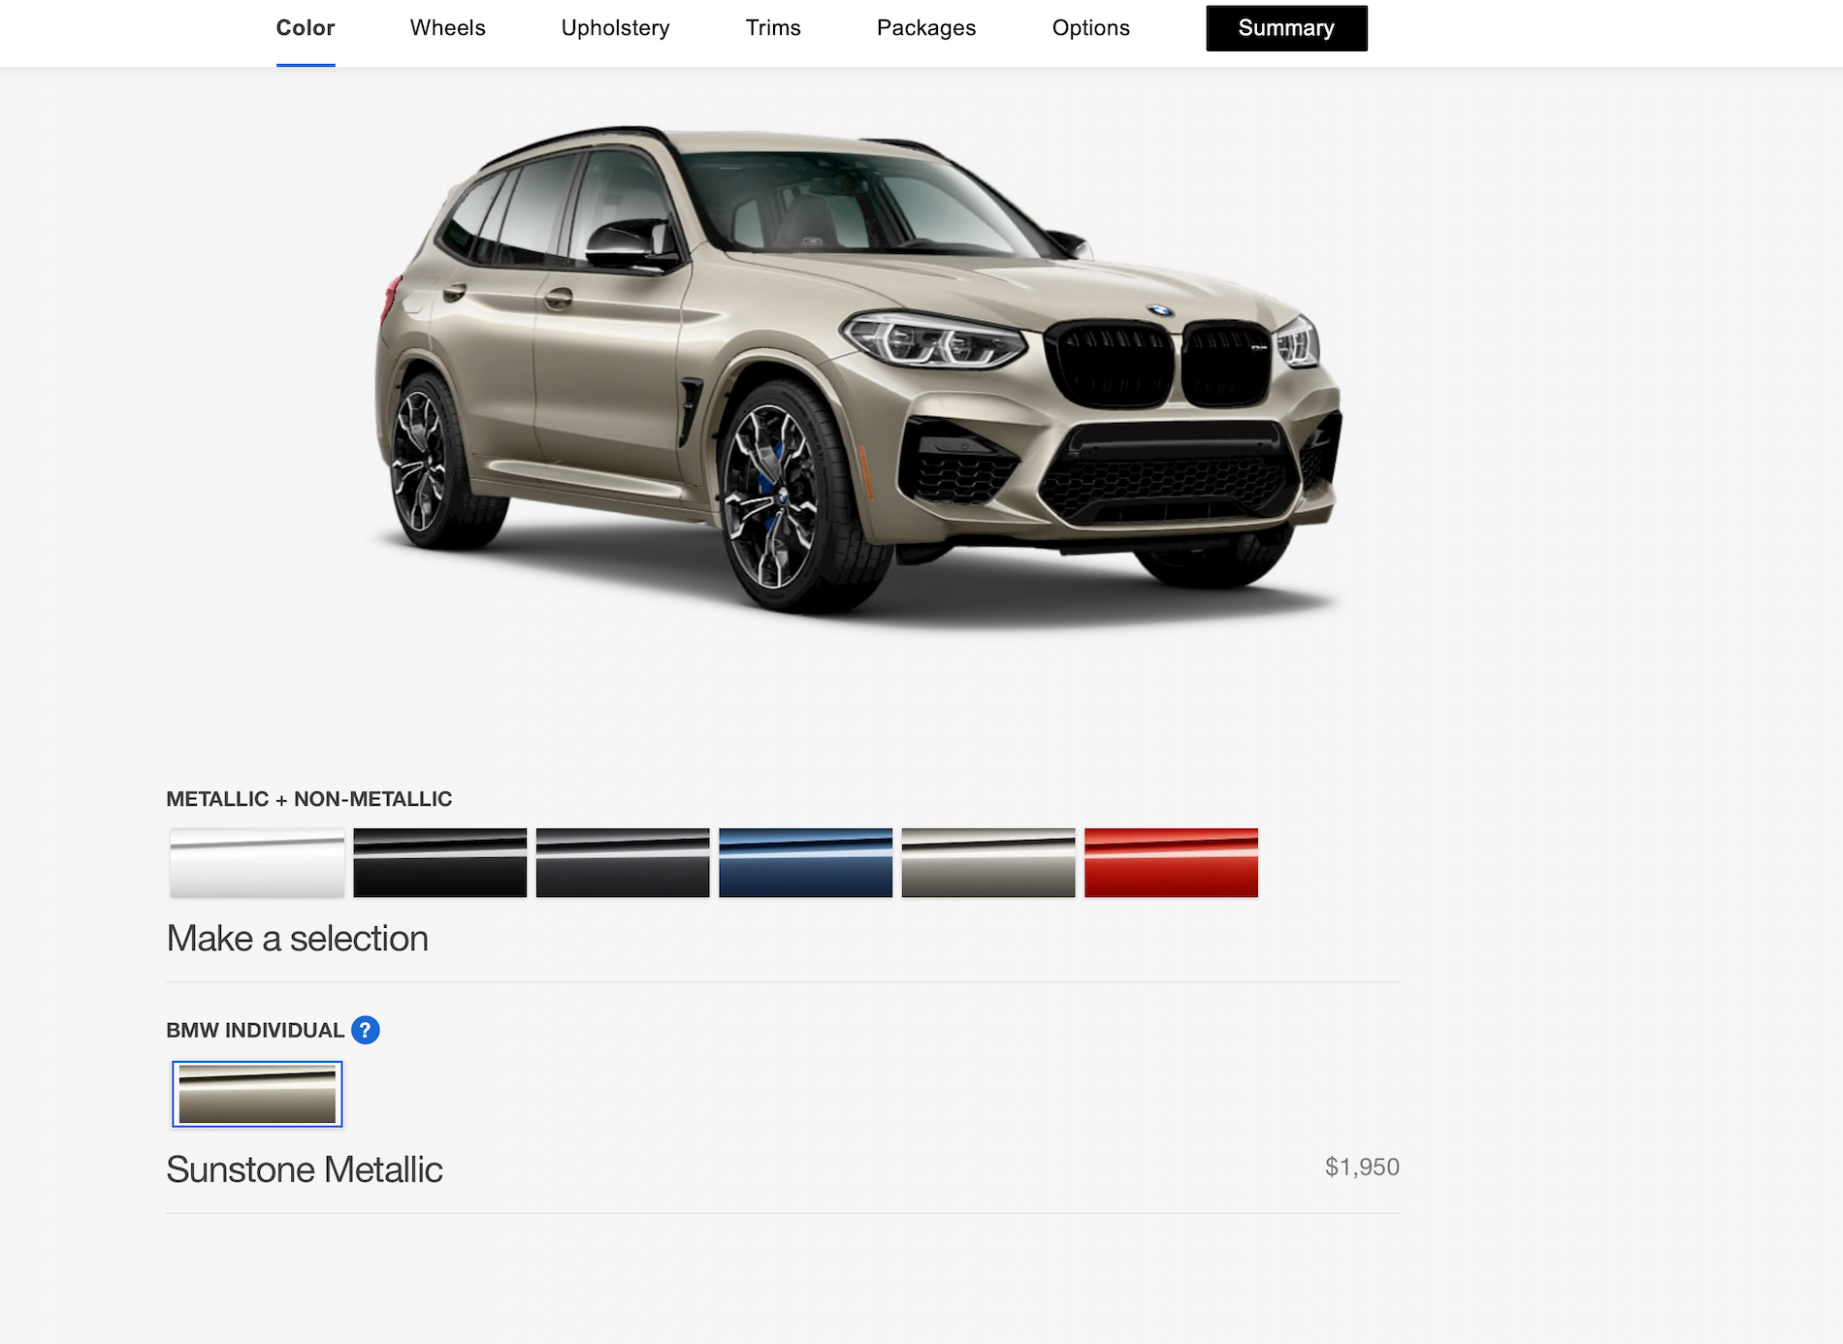 7 BMW X7M and BMW X7M configurators live on BMWUSA.com